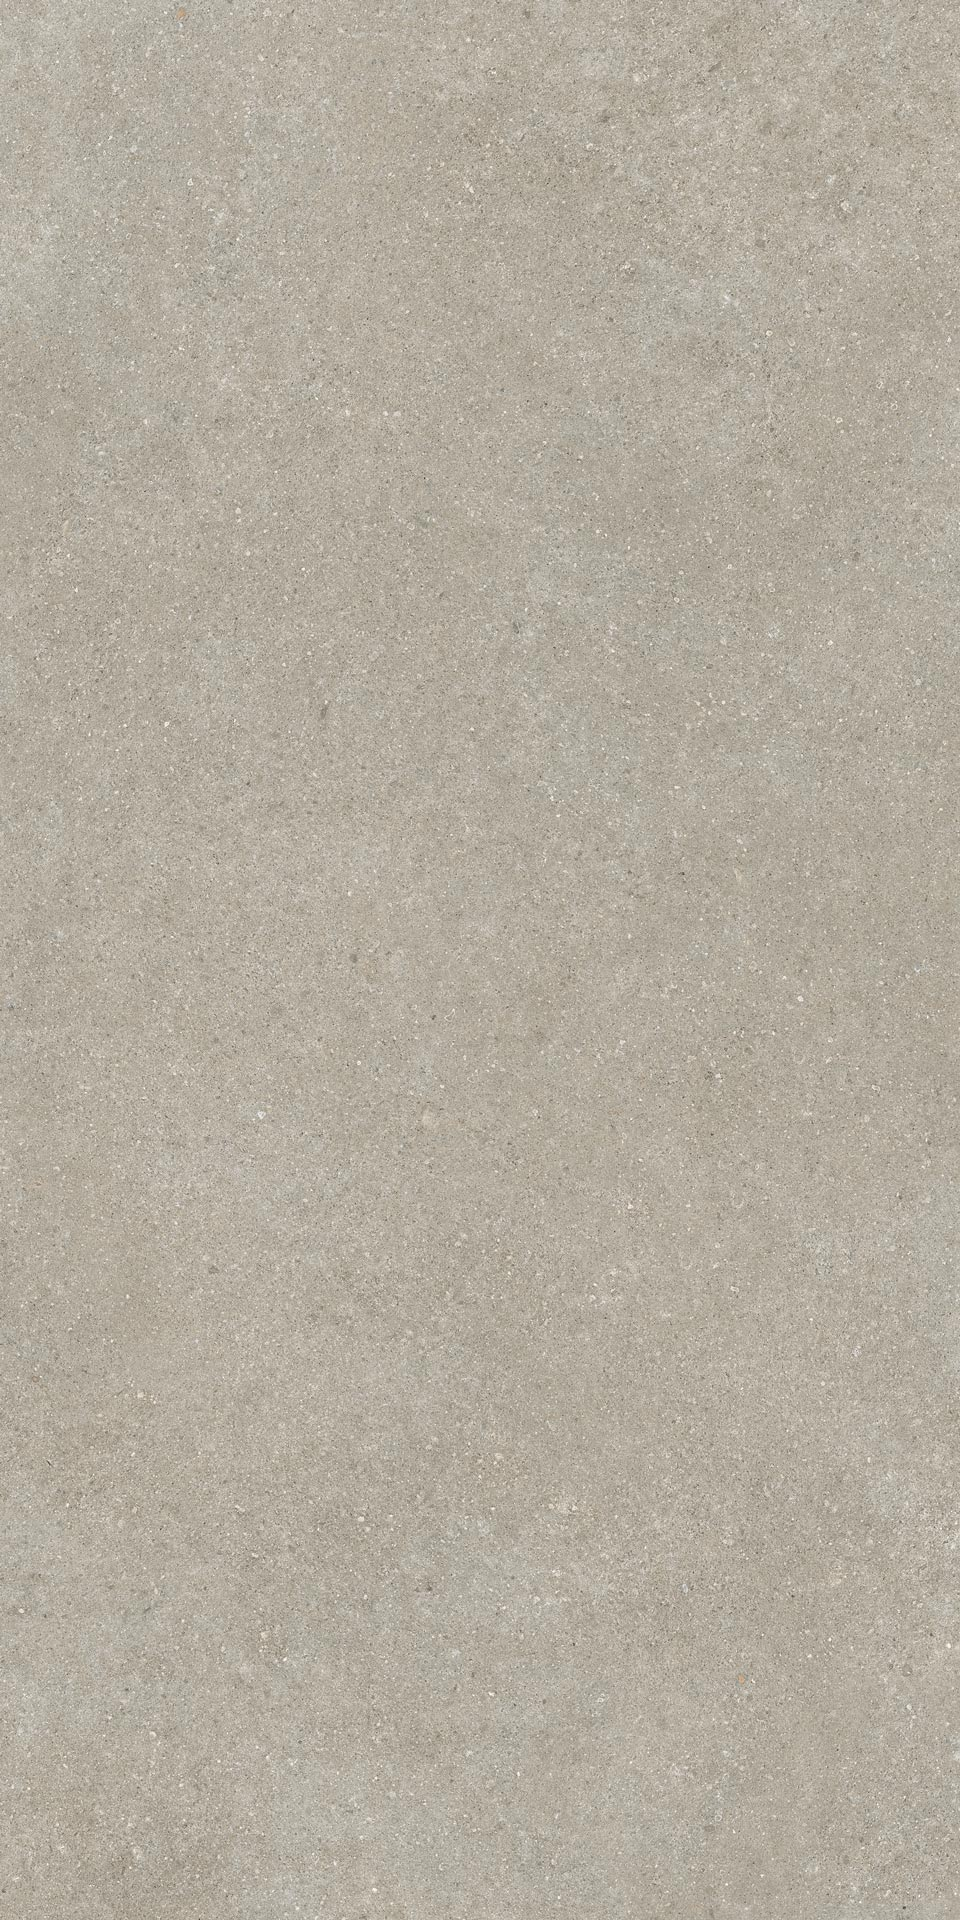 kone-pearl-surface-in-porcelain-tile-for-indoors-and-outdoors-atlas-plan